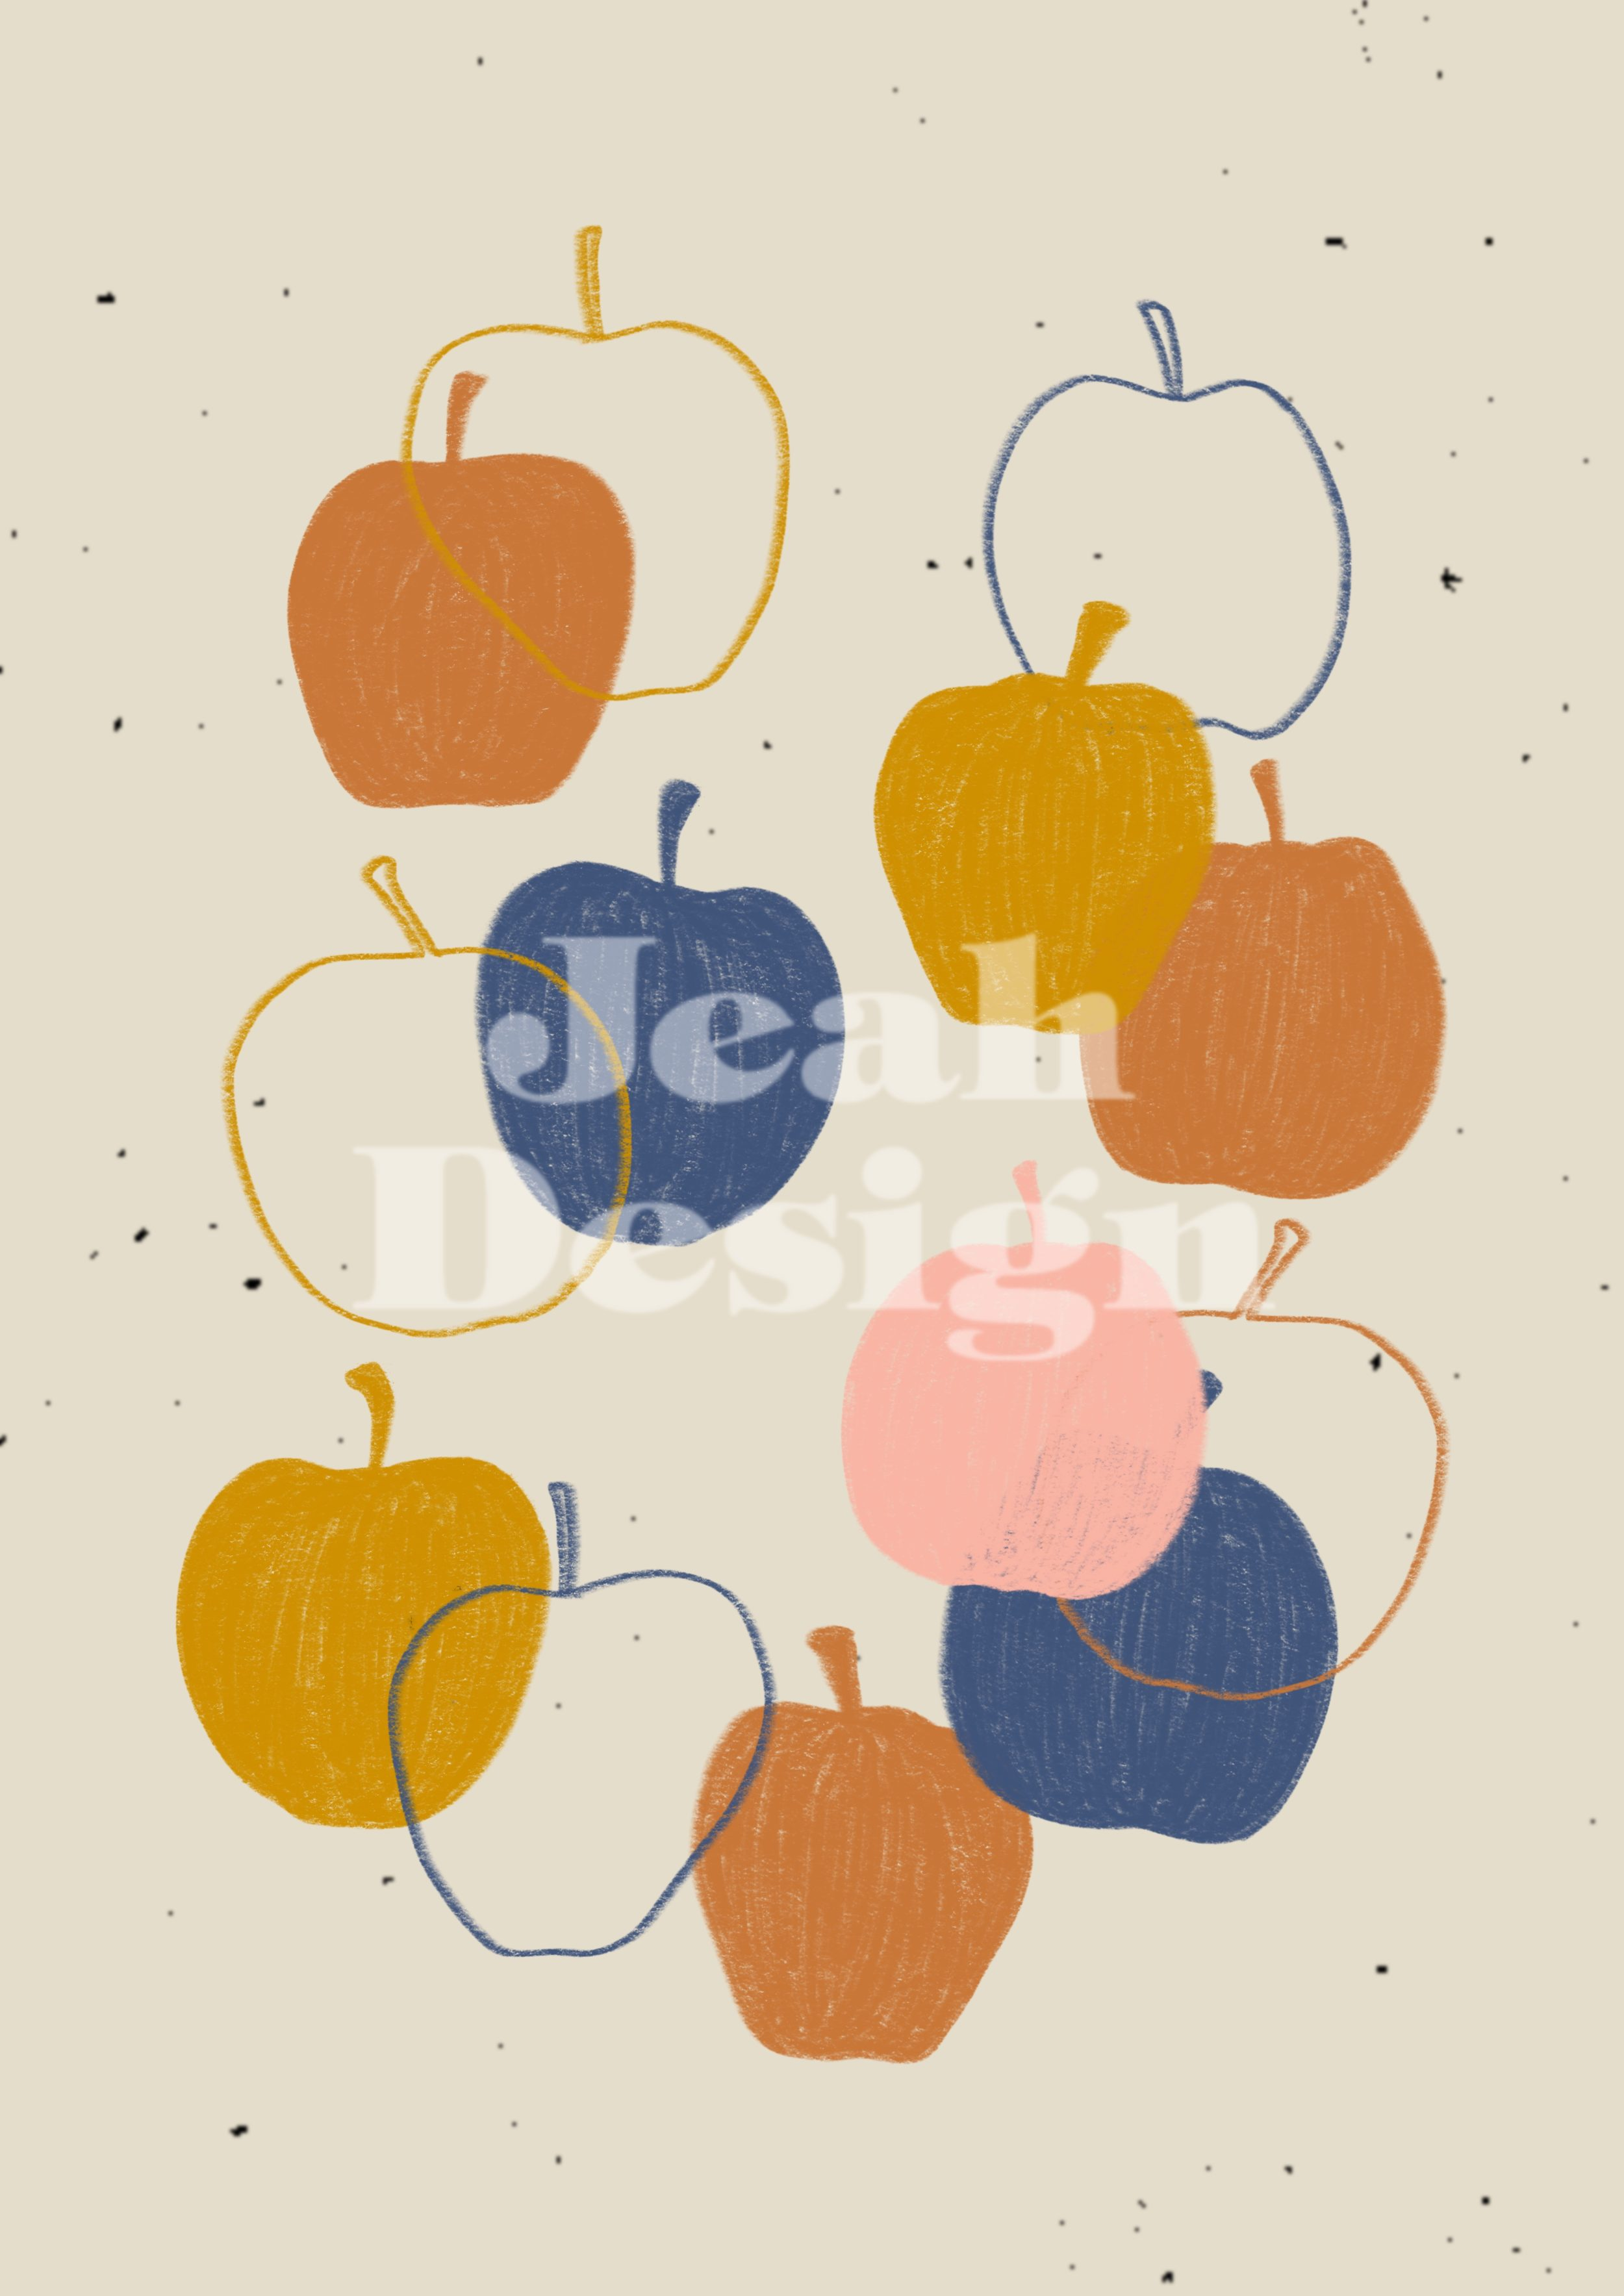 Art print with apple illustrations one it.